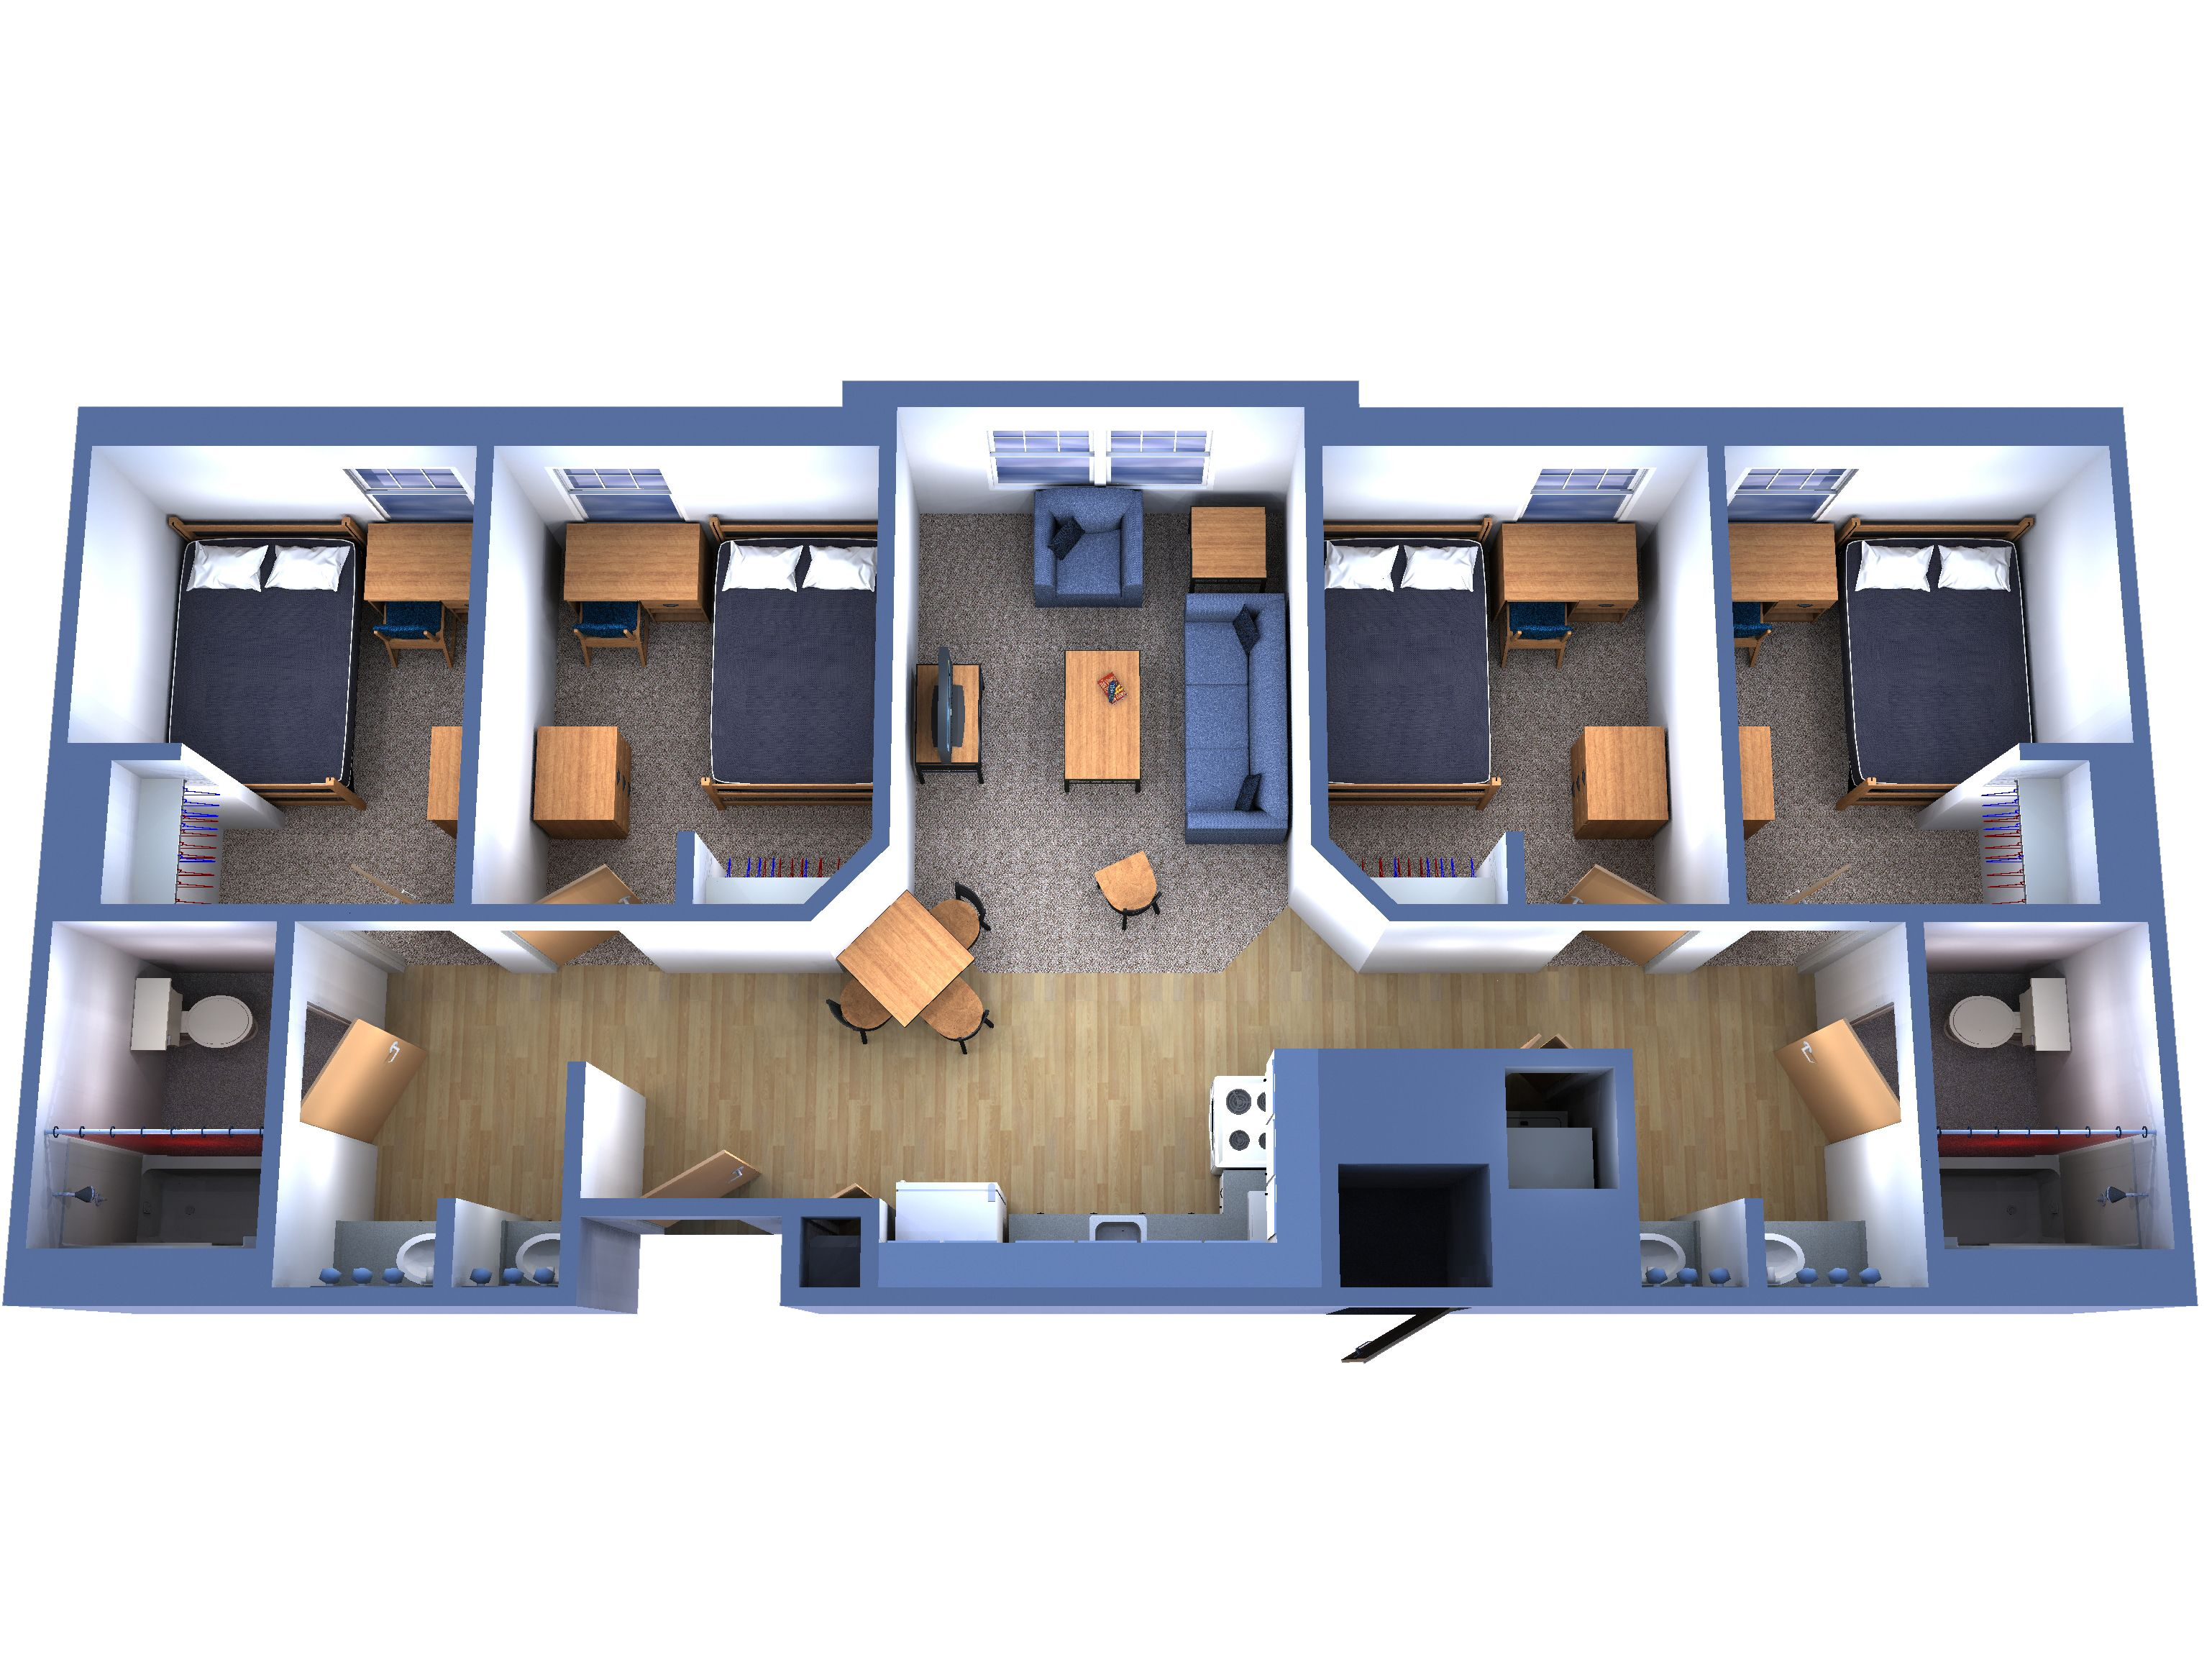 Three Bedroom Flat Layout   Google Keresés